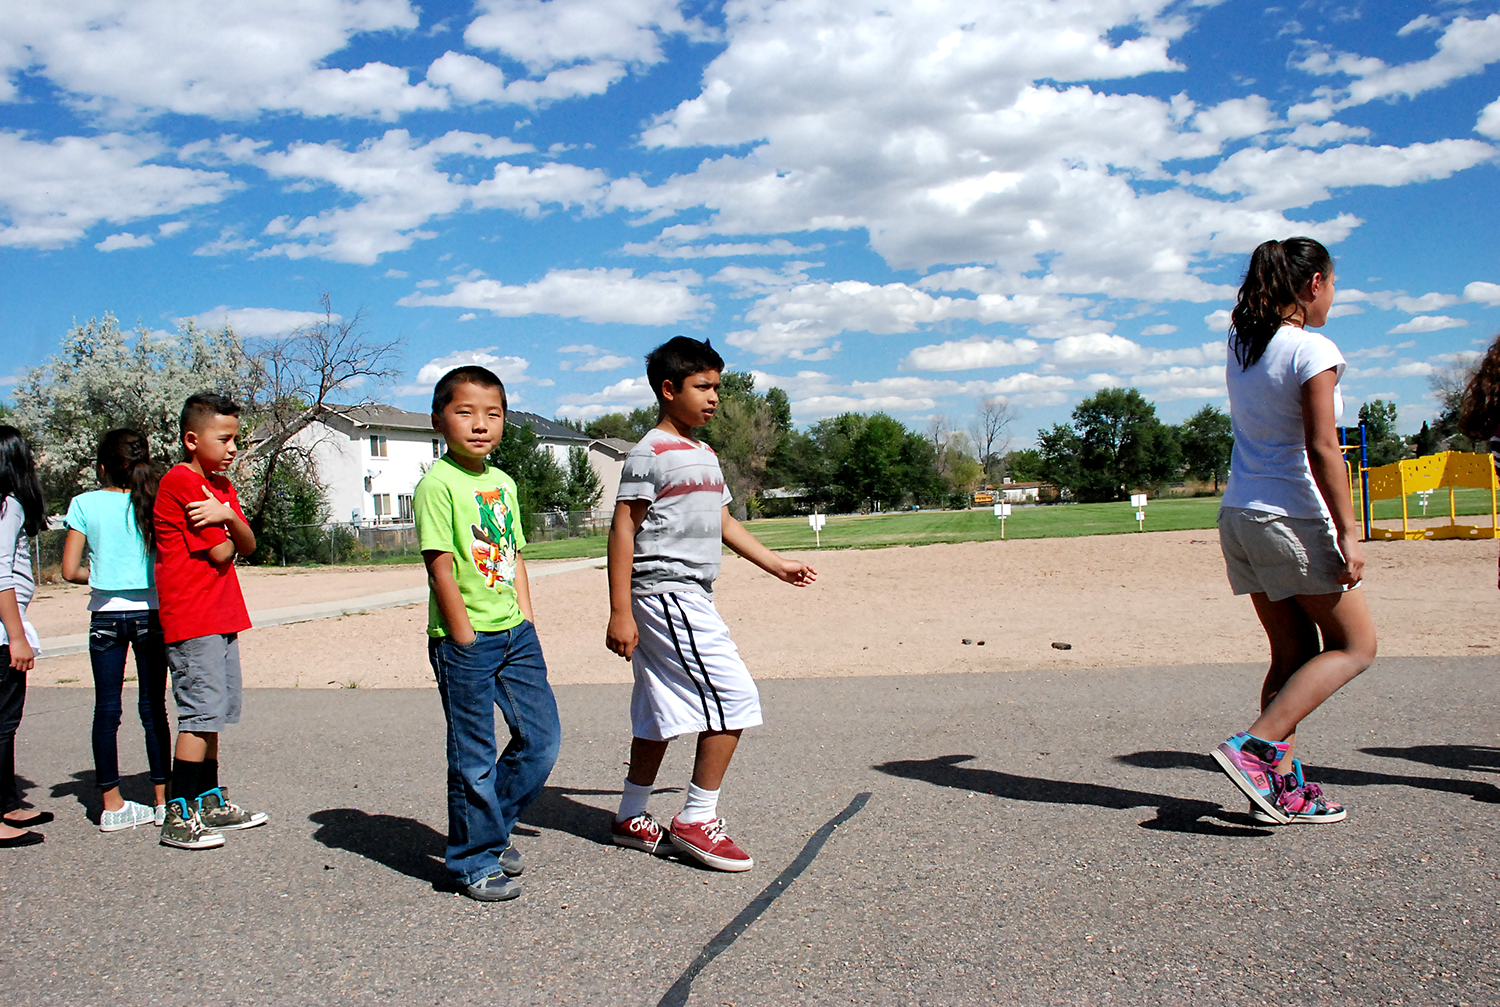 Tennyson Knolls students return to school after a ribbon-cutting ceremony on school grounds in September.